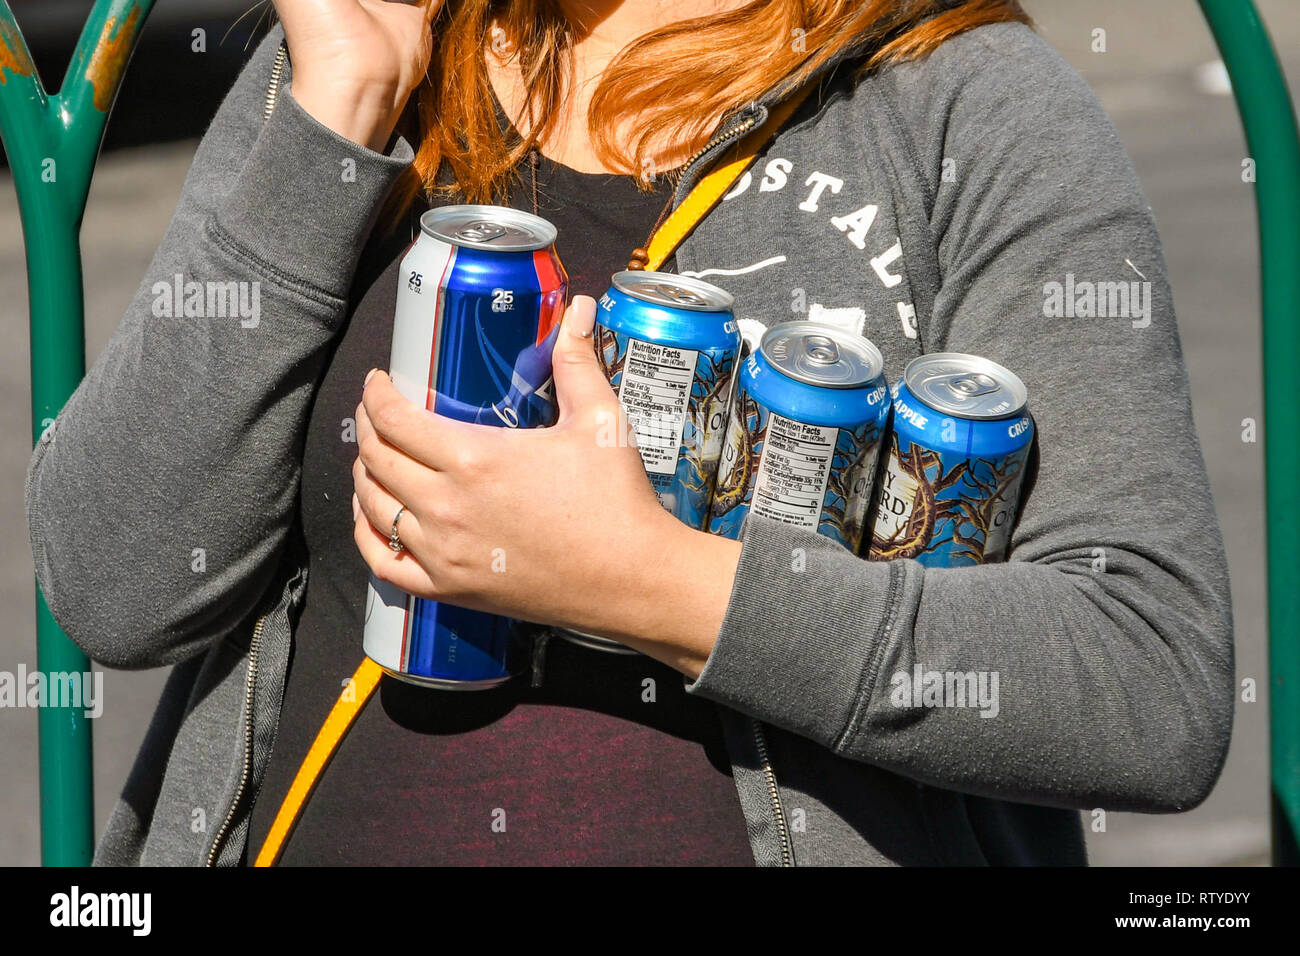 LAS VEGAS, NEVADA, USA - FEBRUARY 2019: Person holiding beer cans on Las Vegas Boulevard, which is also known as The Strip. - Stock Image